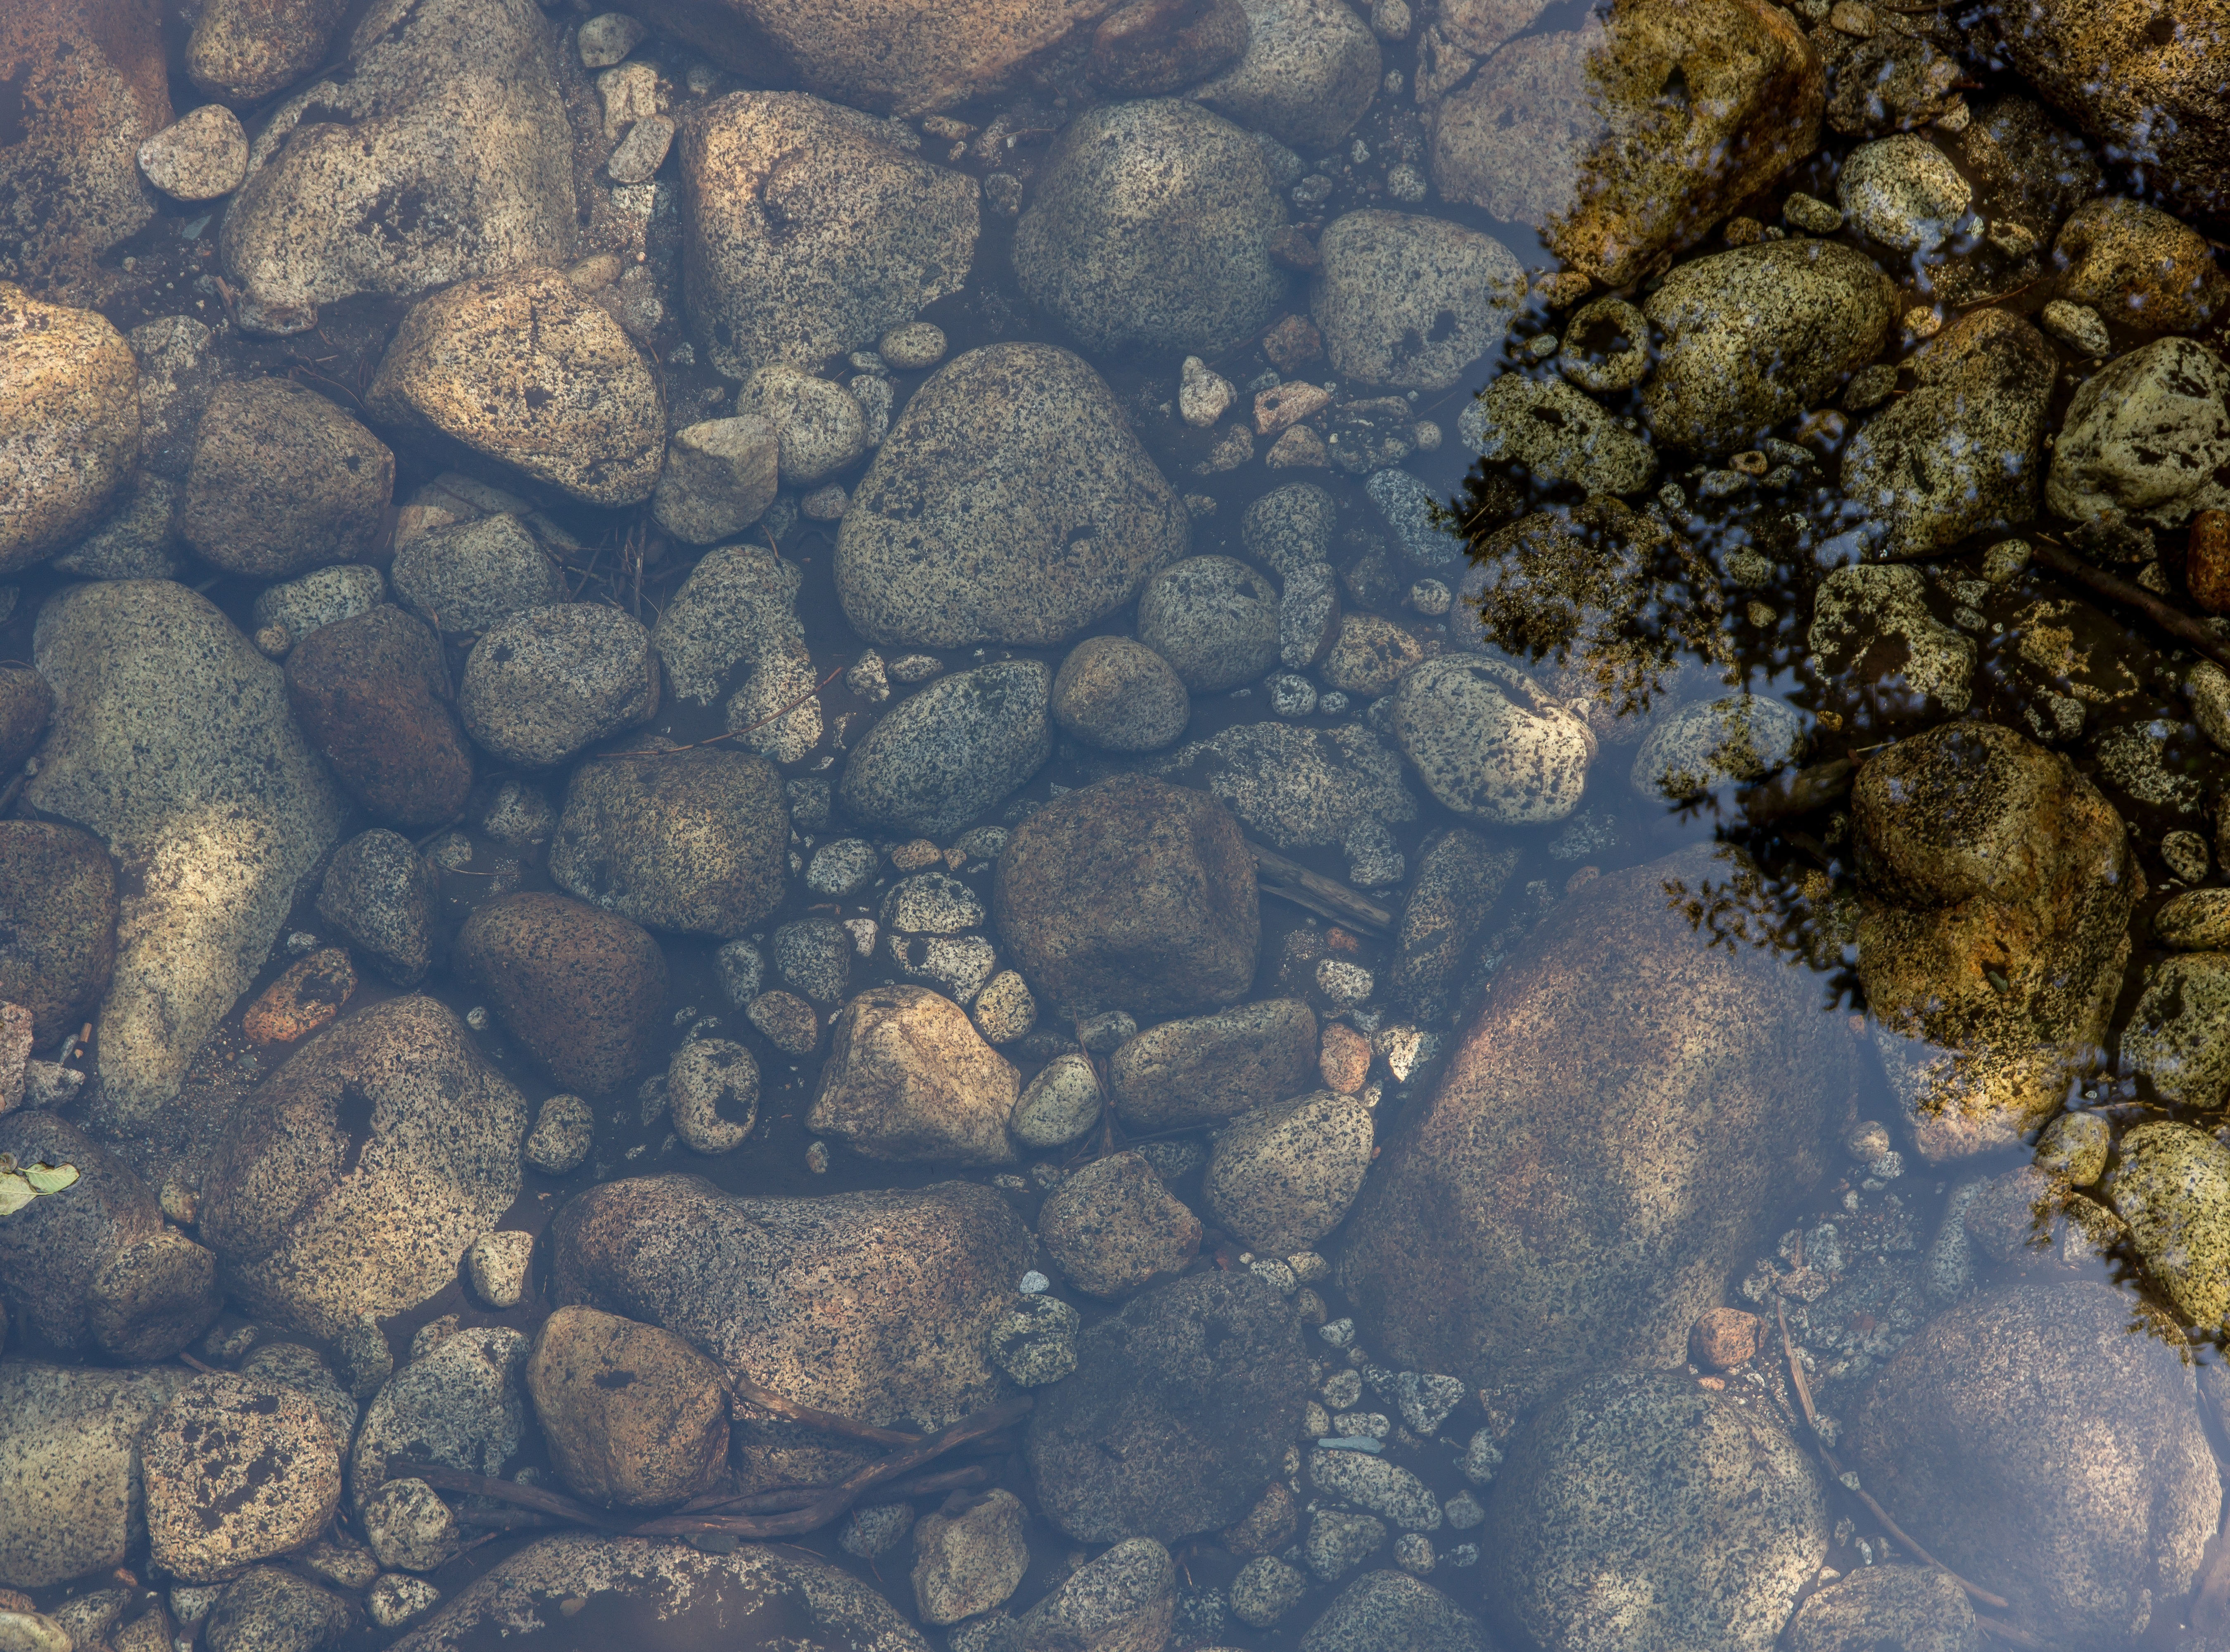 Clear lake, rocks, stones, water, clear, lake, translucent, water, background